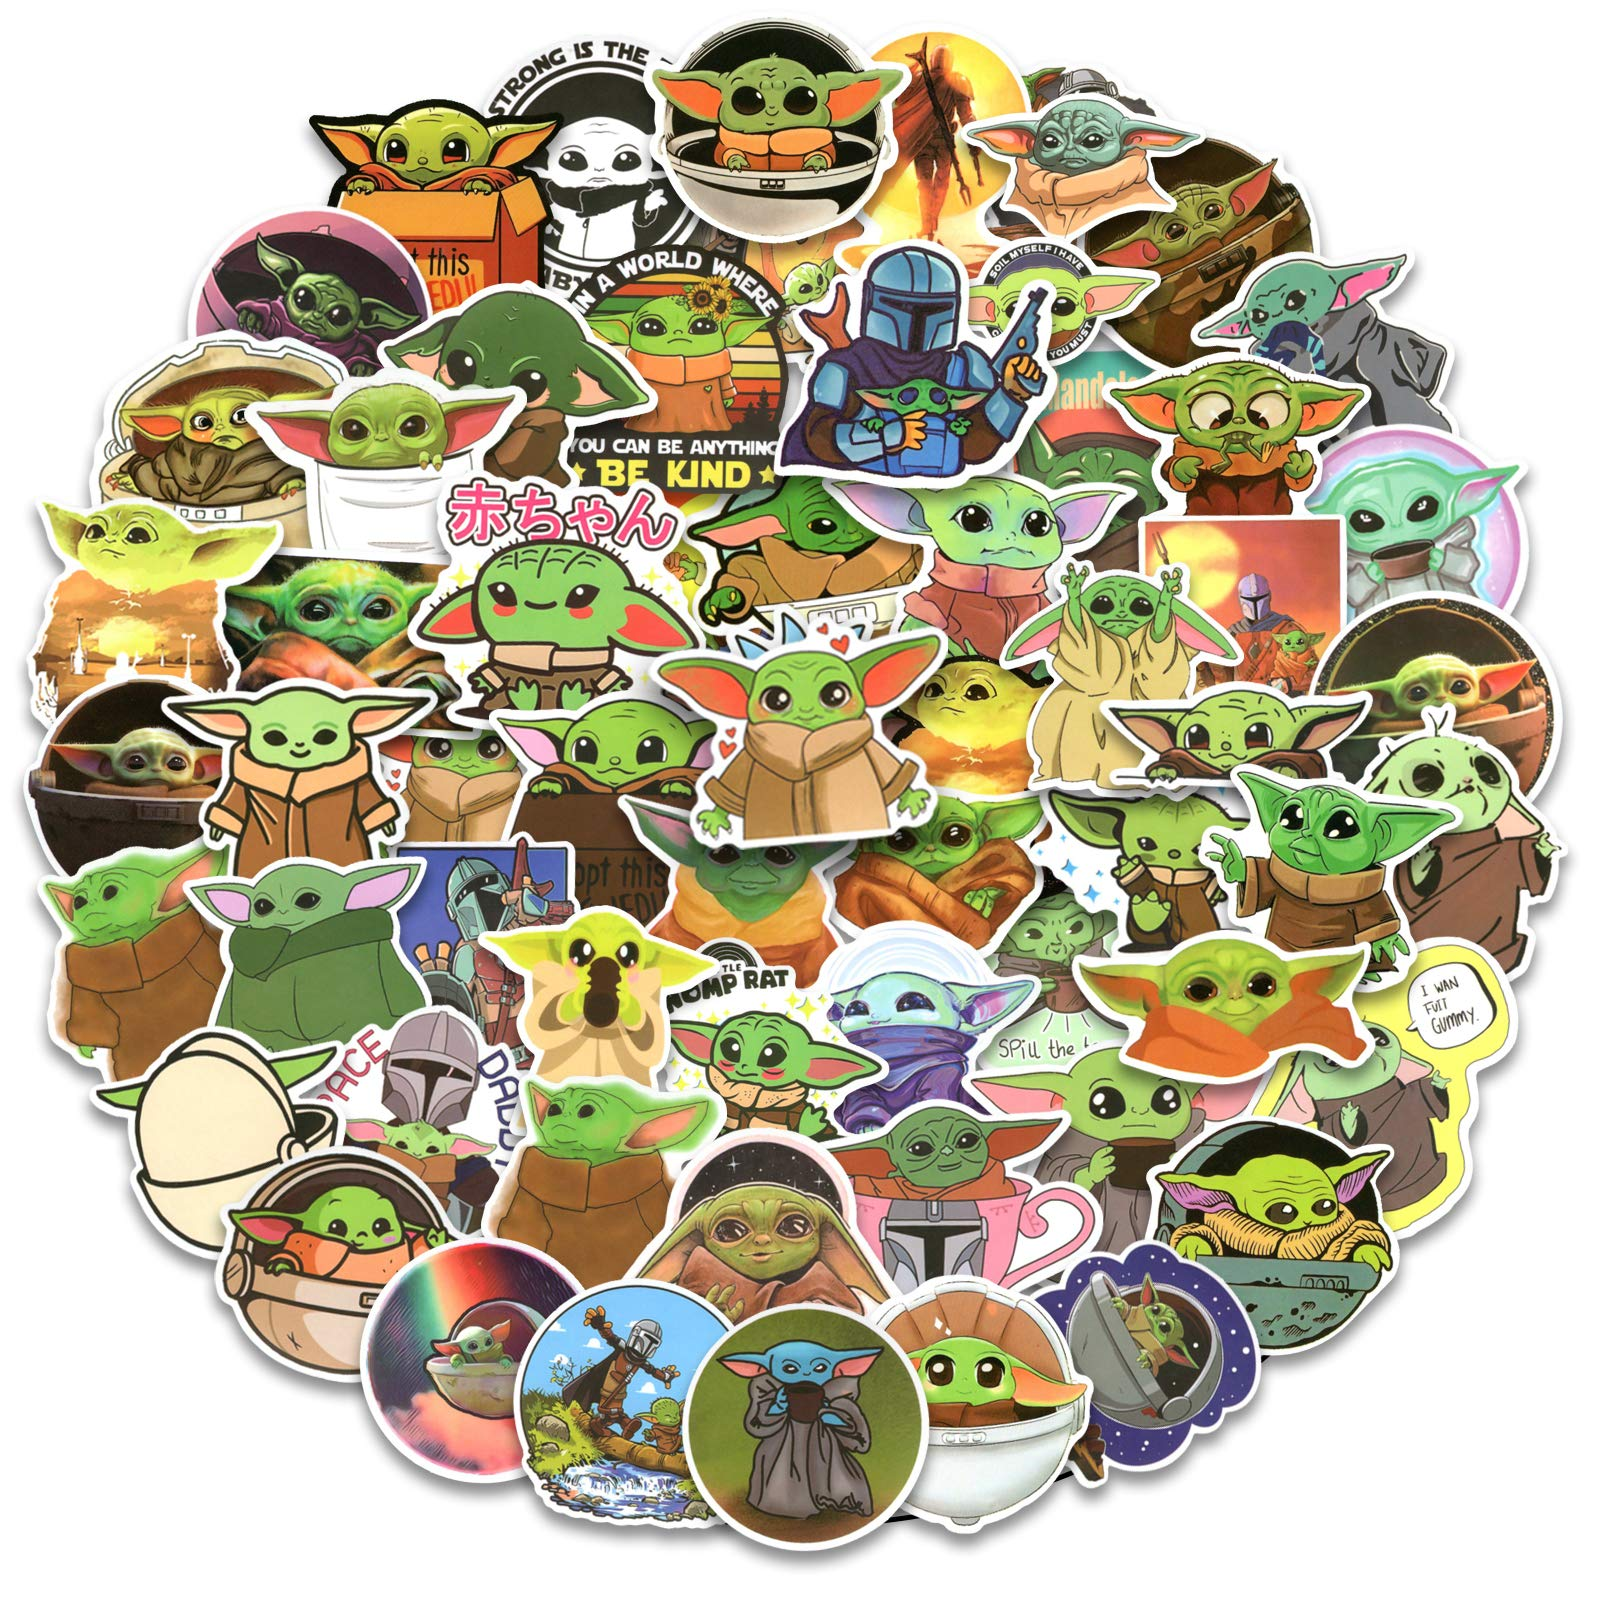 Baby Yoda Stickers, 100pcs Mandalorian Star Wars Decals for Laptop, Vinyl Waterproof Stickers for Water Bottle, Hydro Flasks, Cool Cute Cartoon Stickers for Kids, Teens, Adults